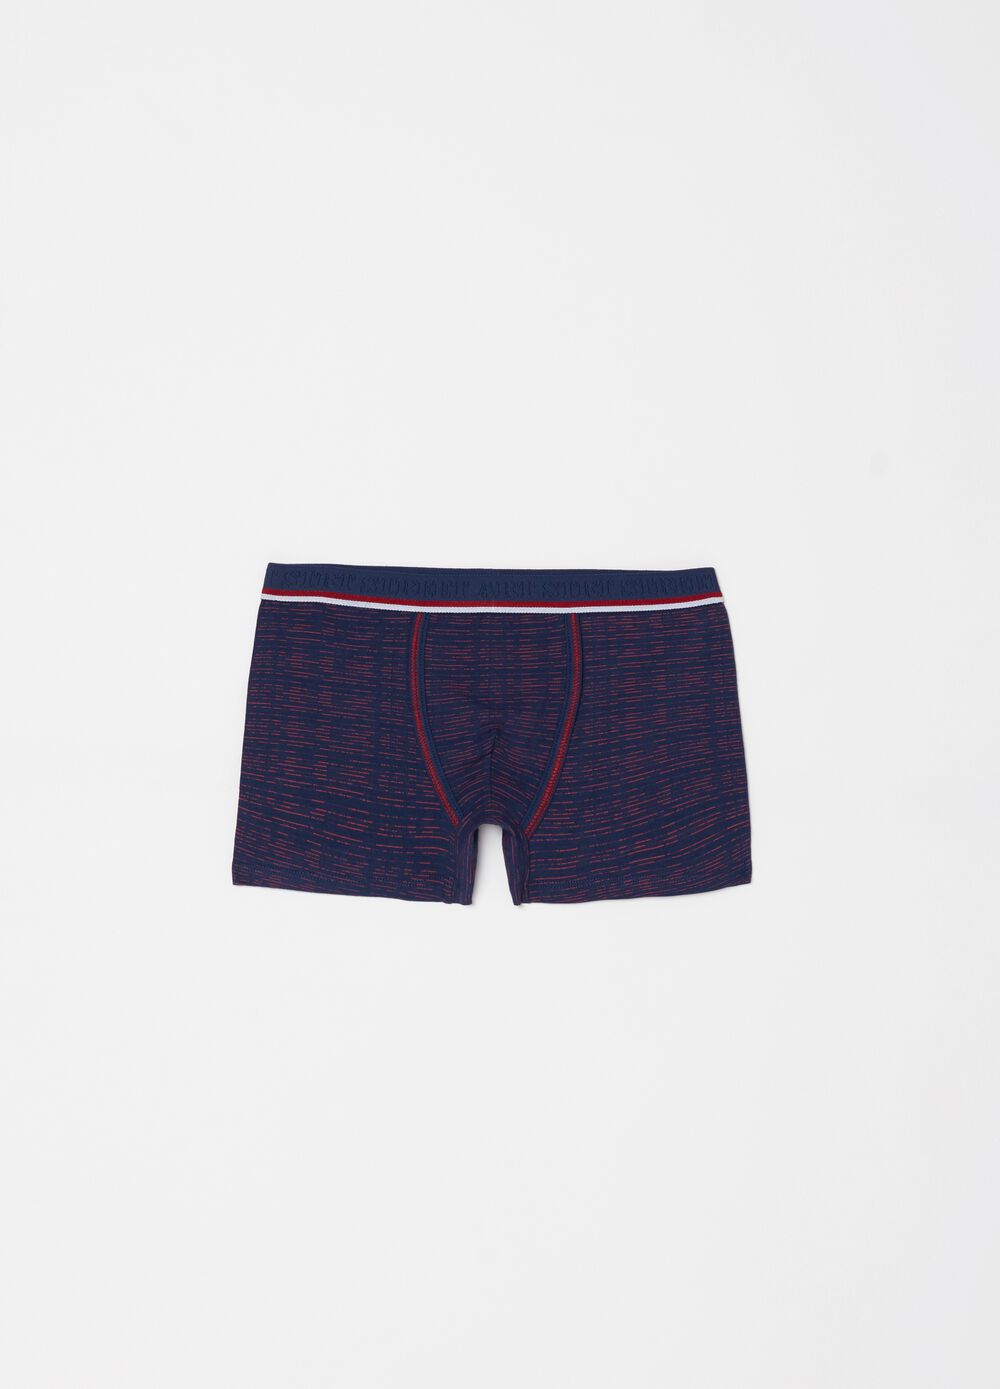 Patterned and embroidered boxer shorts in organic cotton